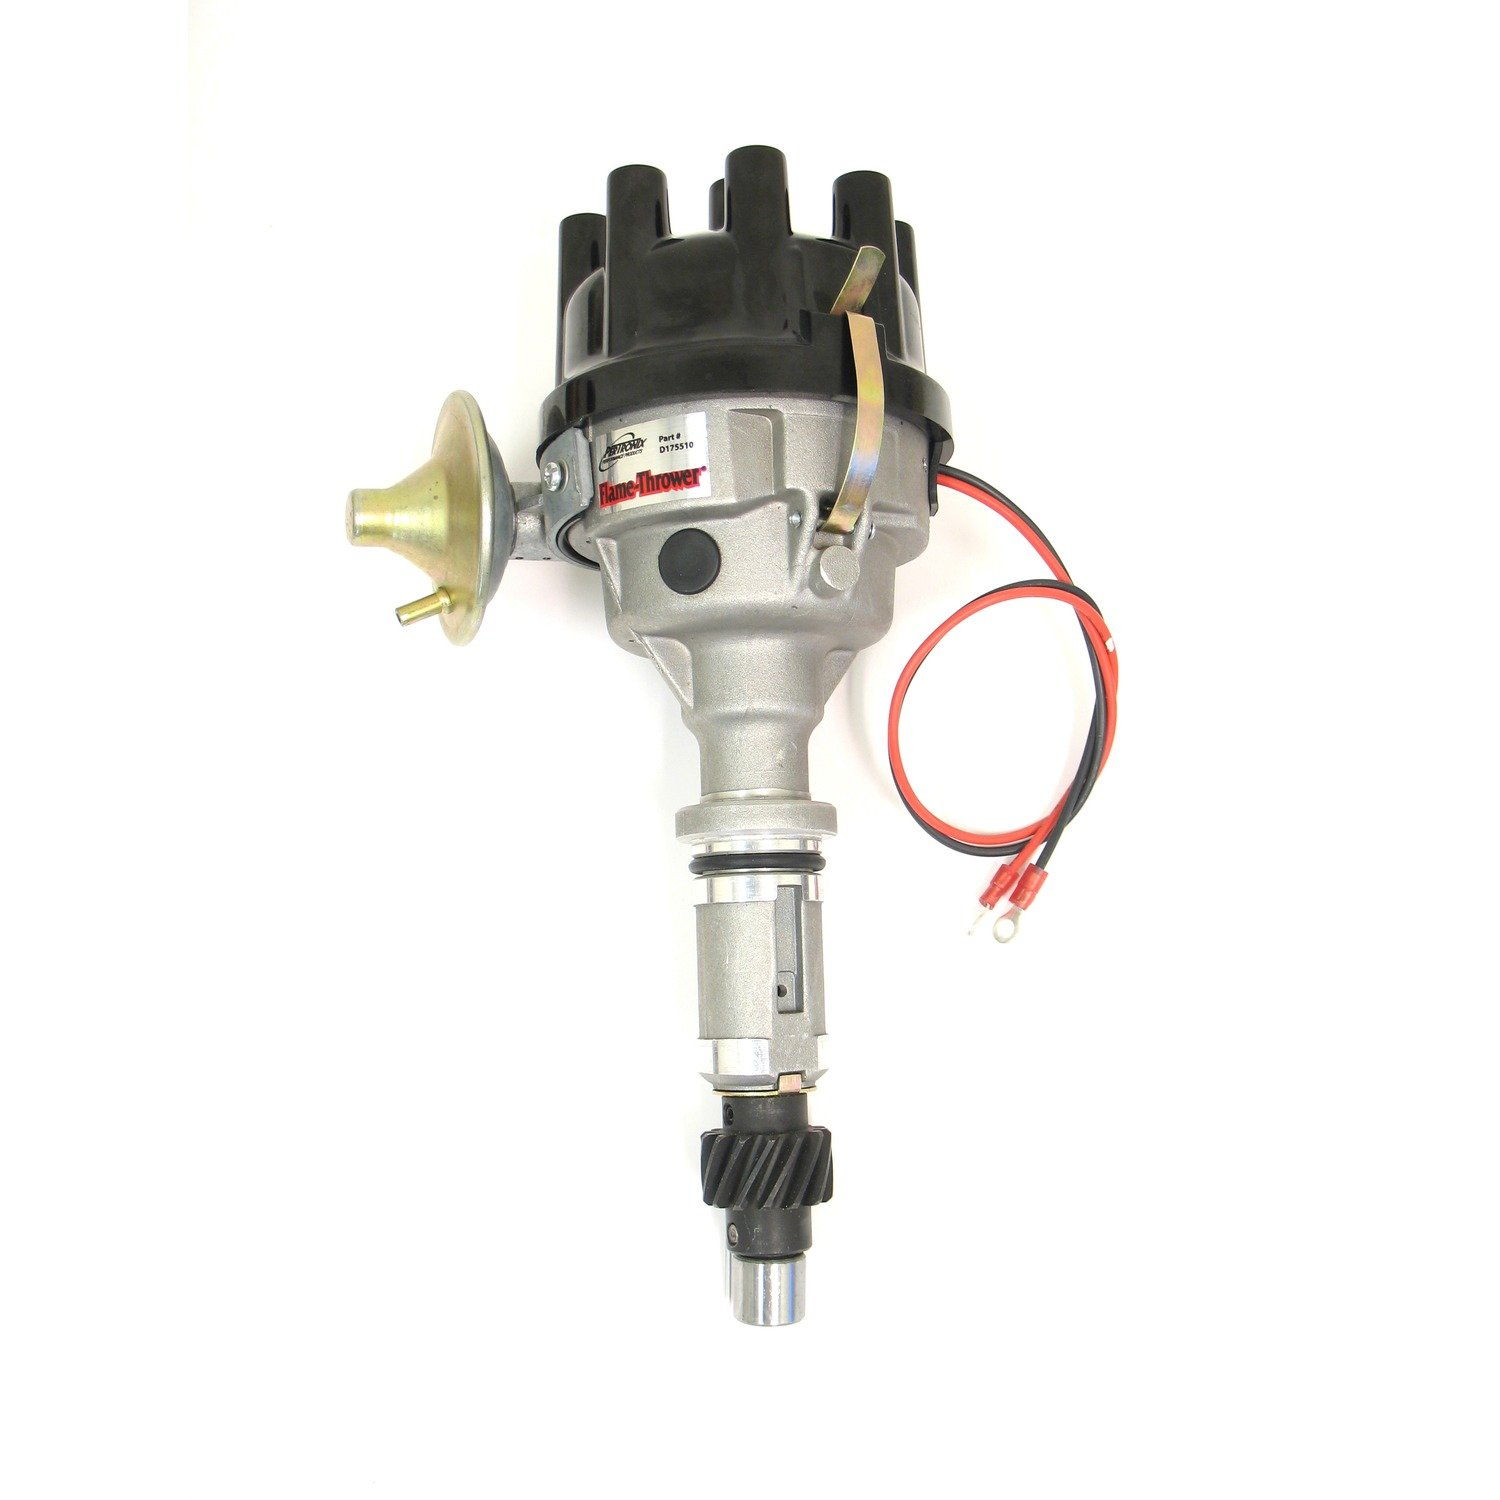 Pertronix D175510 Flame-Thrower Rover 8 cyl Plug and Play Vacuum Advance Cast Electronic Distributor with Ignitor Technology